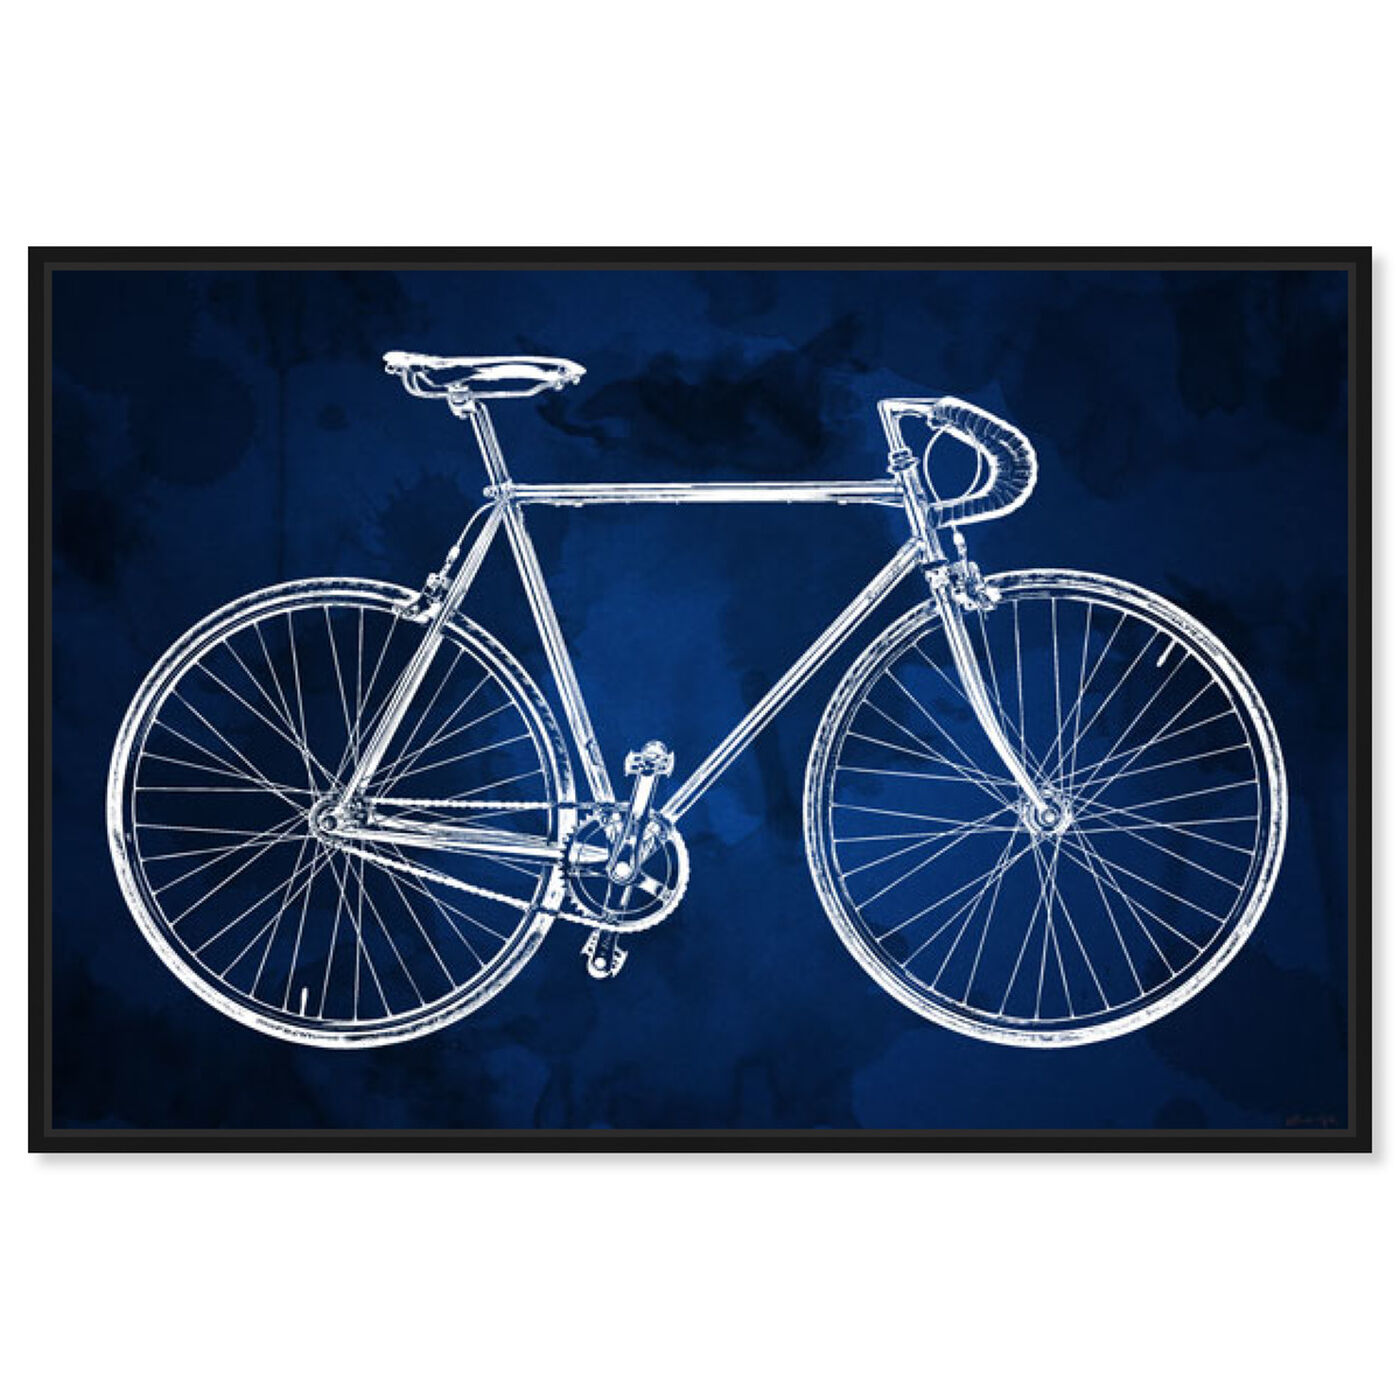 Front view of Fixie featuring transportation and bicycles art.